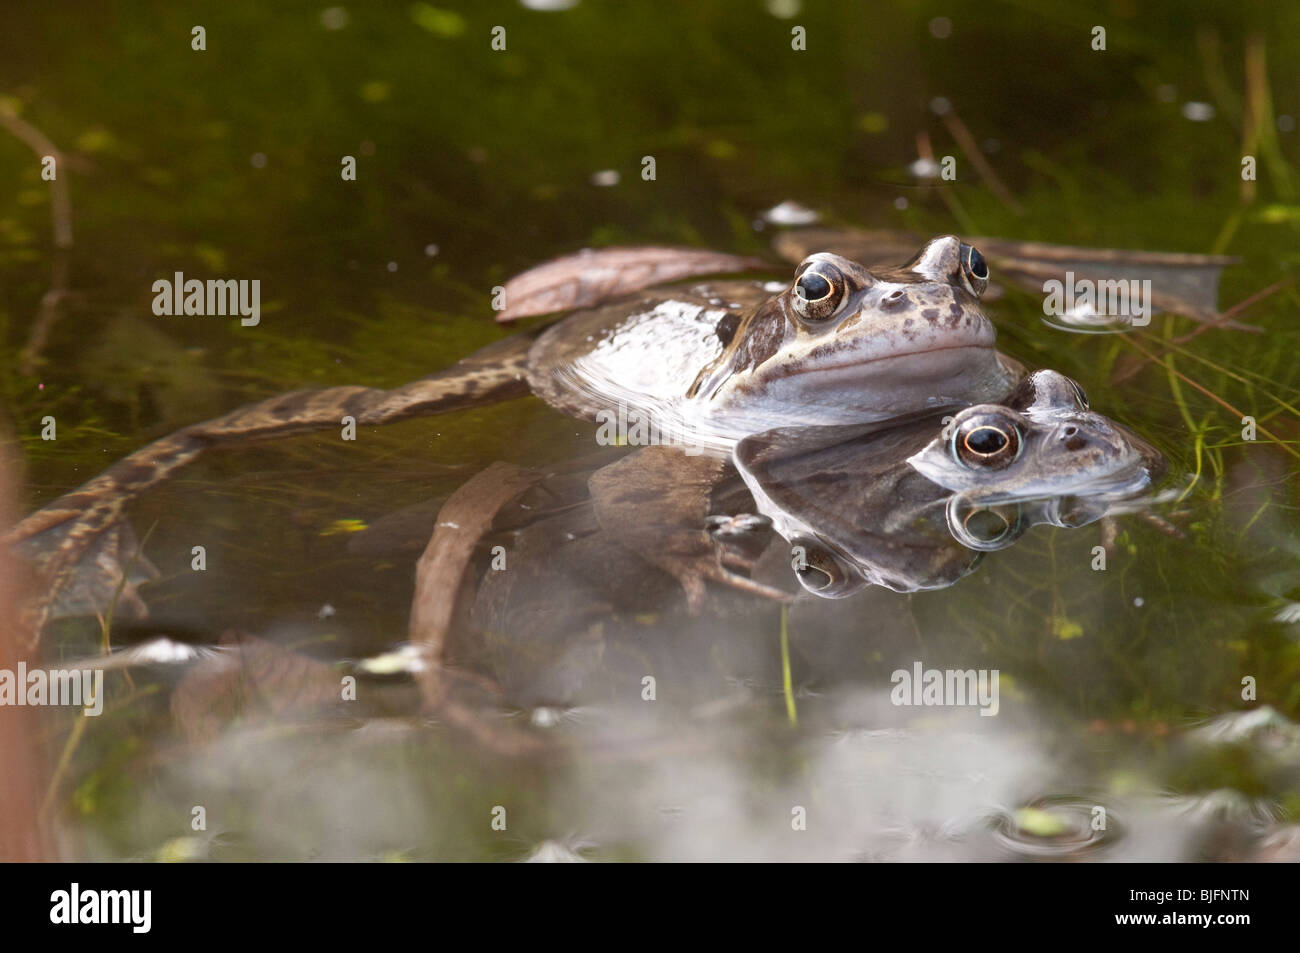 Common Frog in a Garden Pond in Hampshire Stock Photo